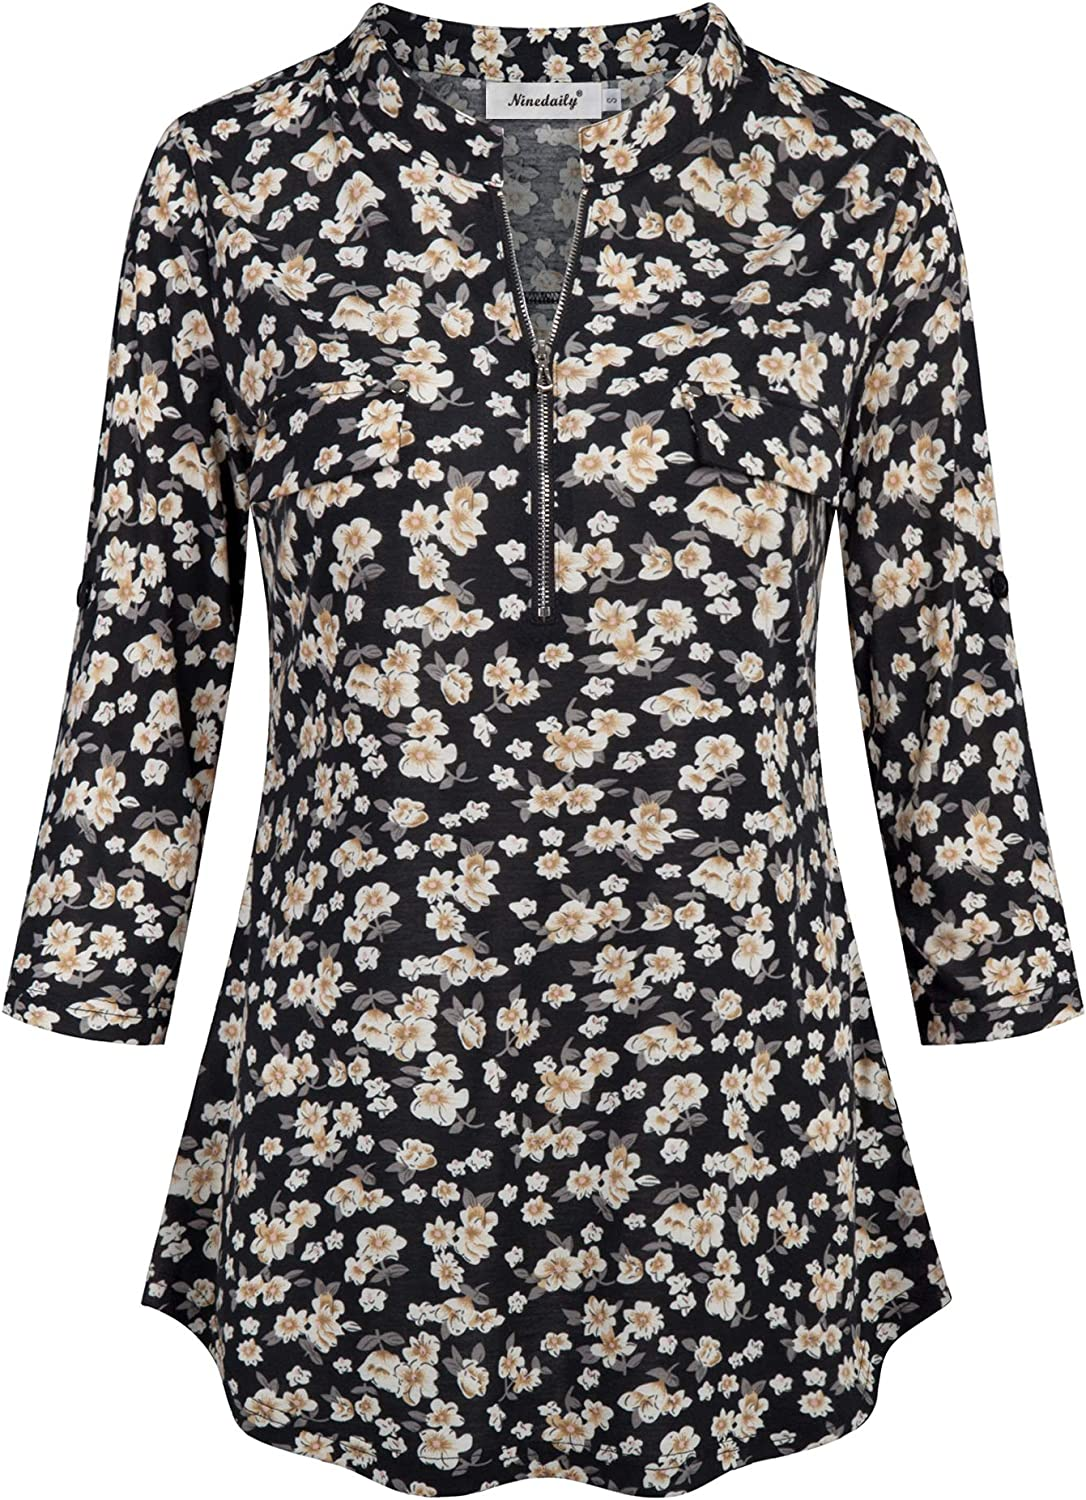 Ninedaily Womens 3//4 Sleeve Roll up Shirts Zip Floral Casual Tunic Blouse Tops